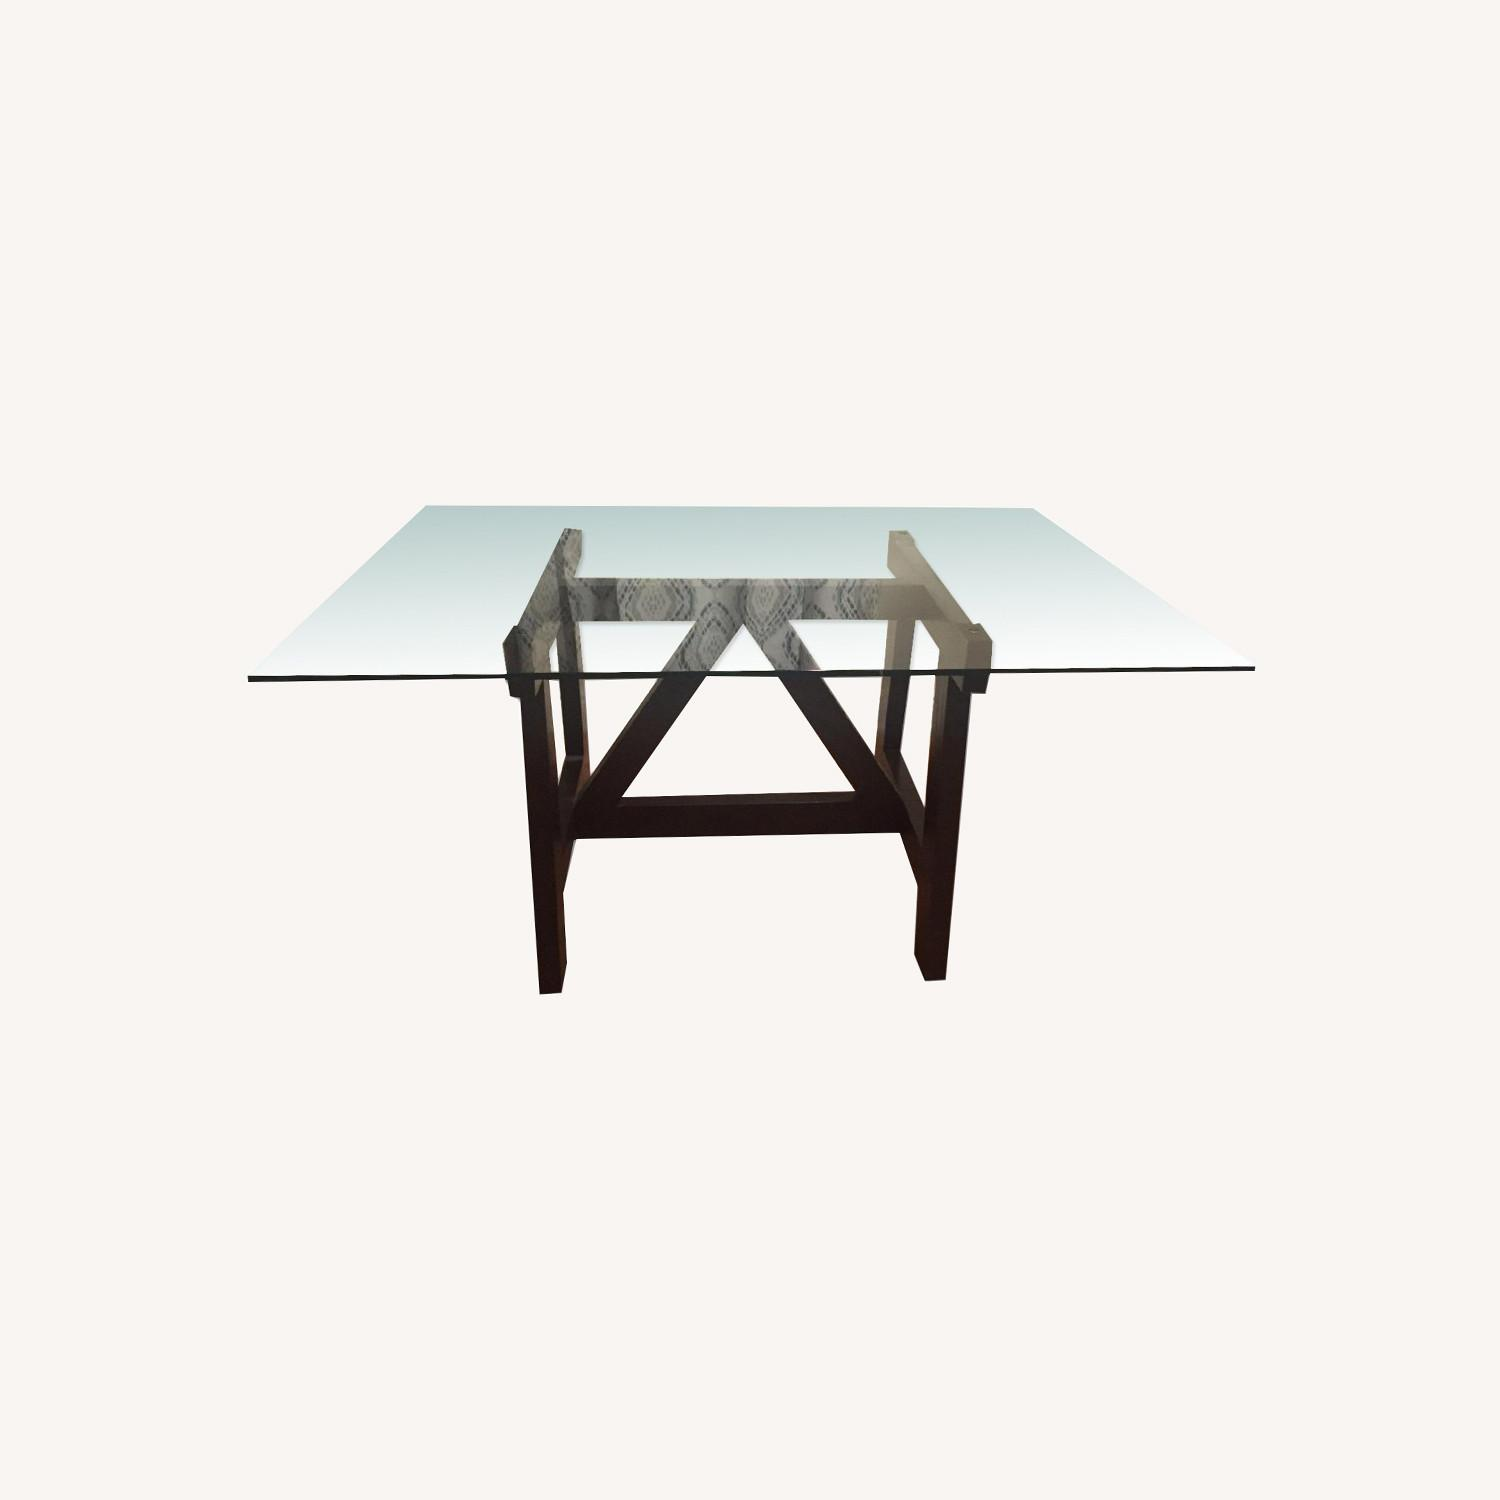 West Elm Dining Table w/ 4 Chairs - image-11